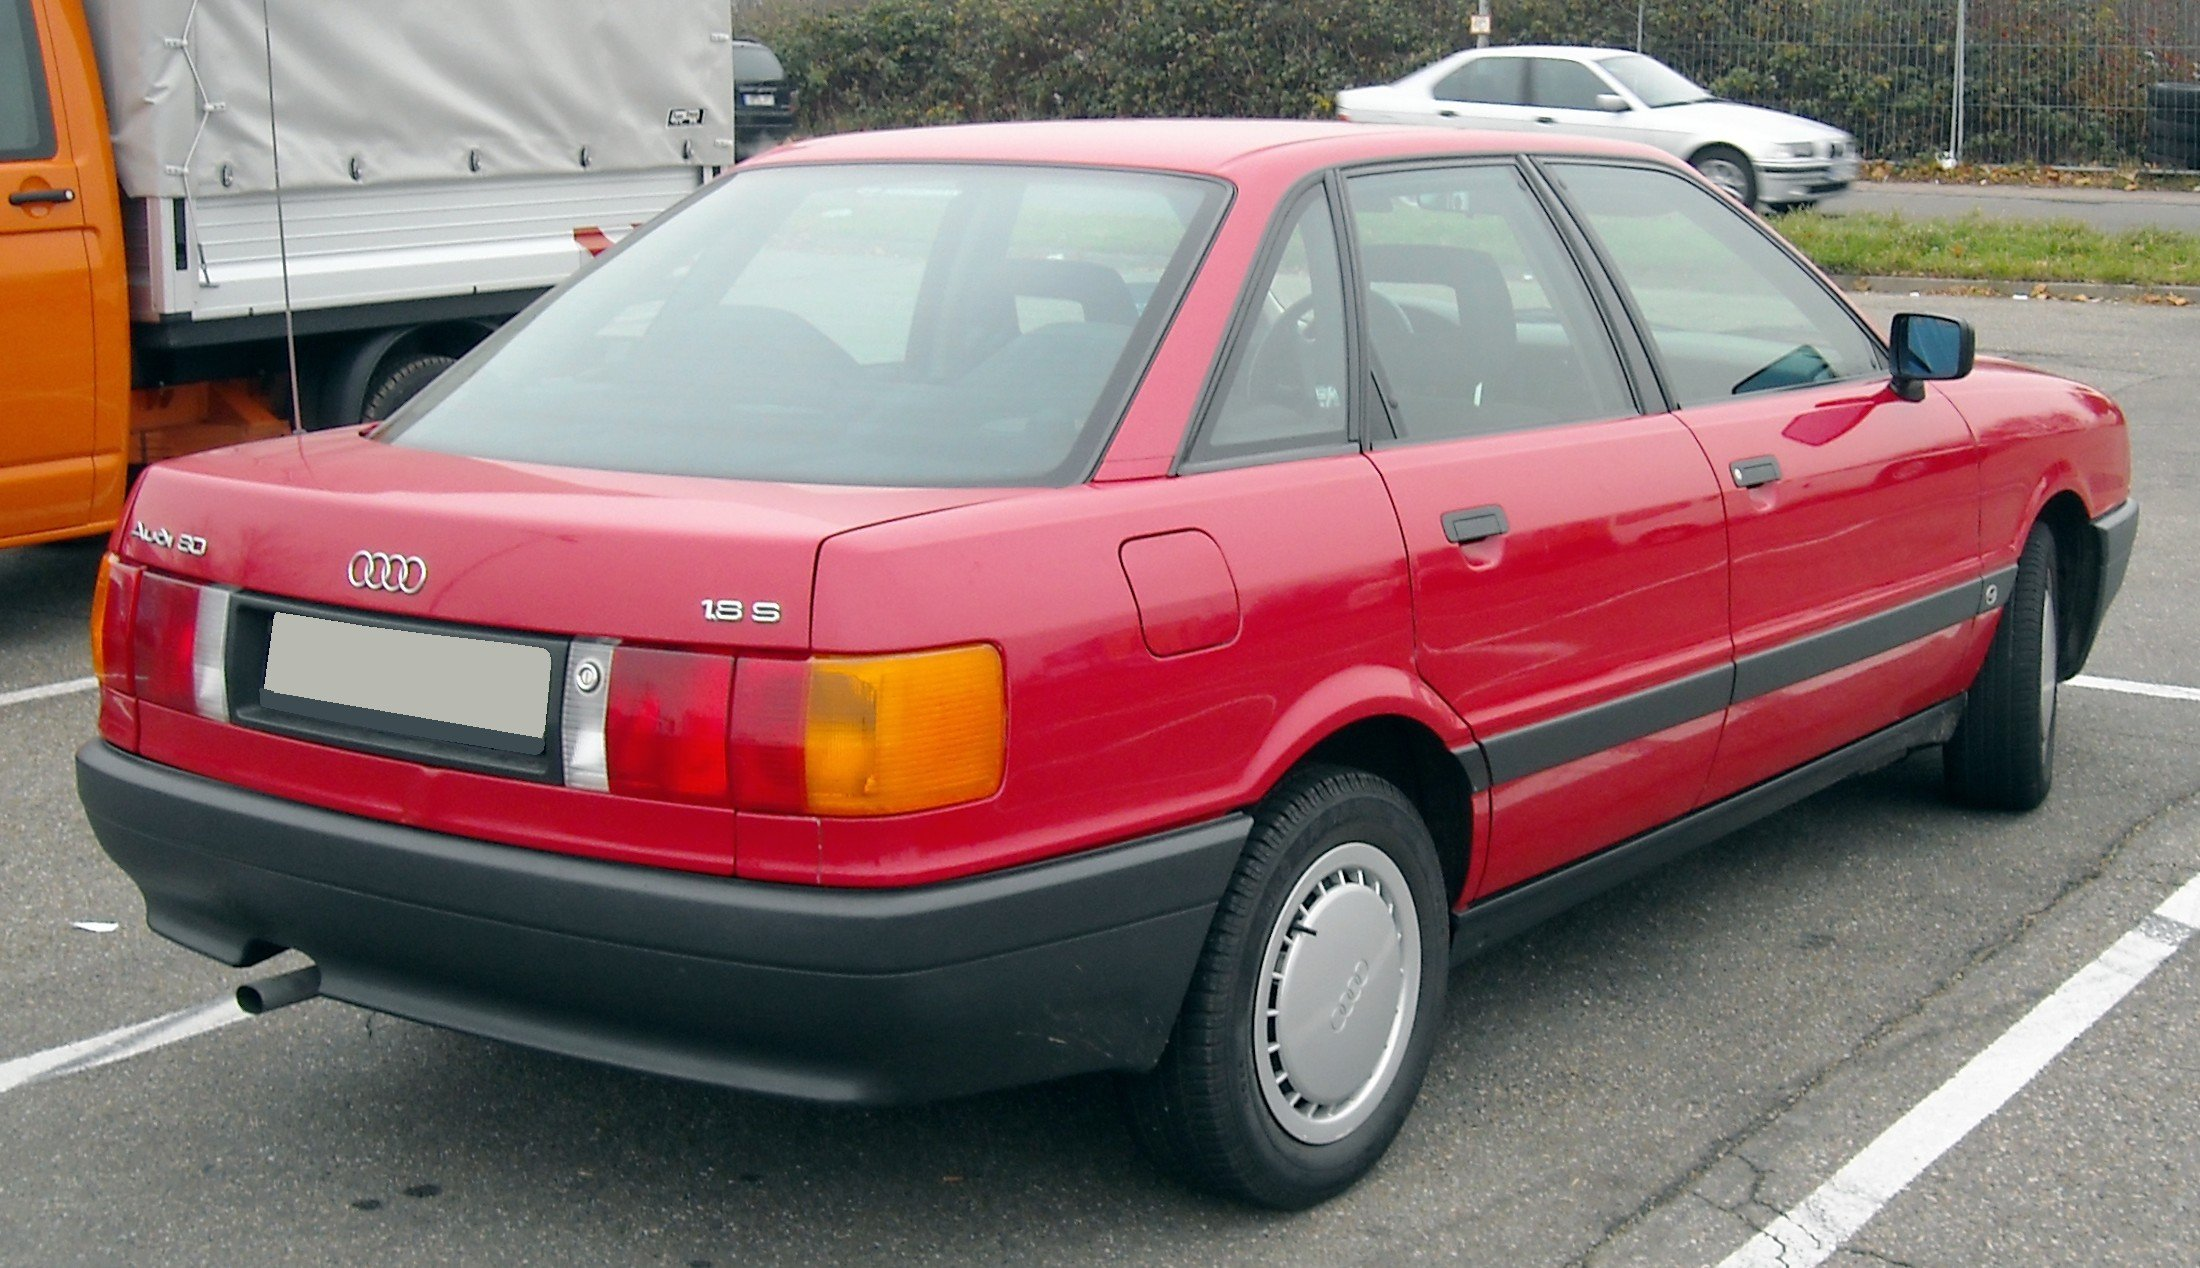 1990 Audi 80 (b3) - pictures, information and specs - Auto ...